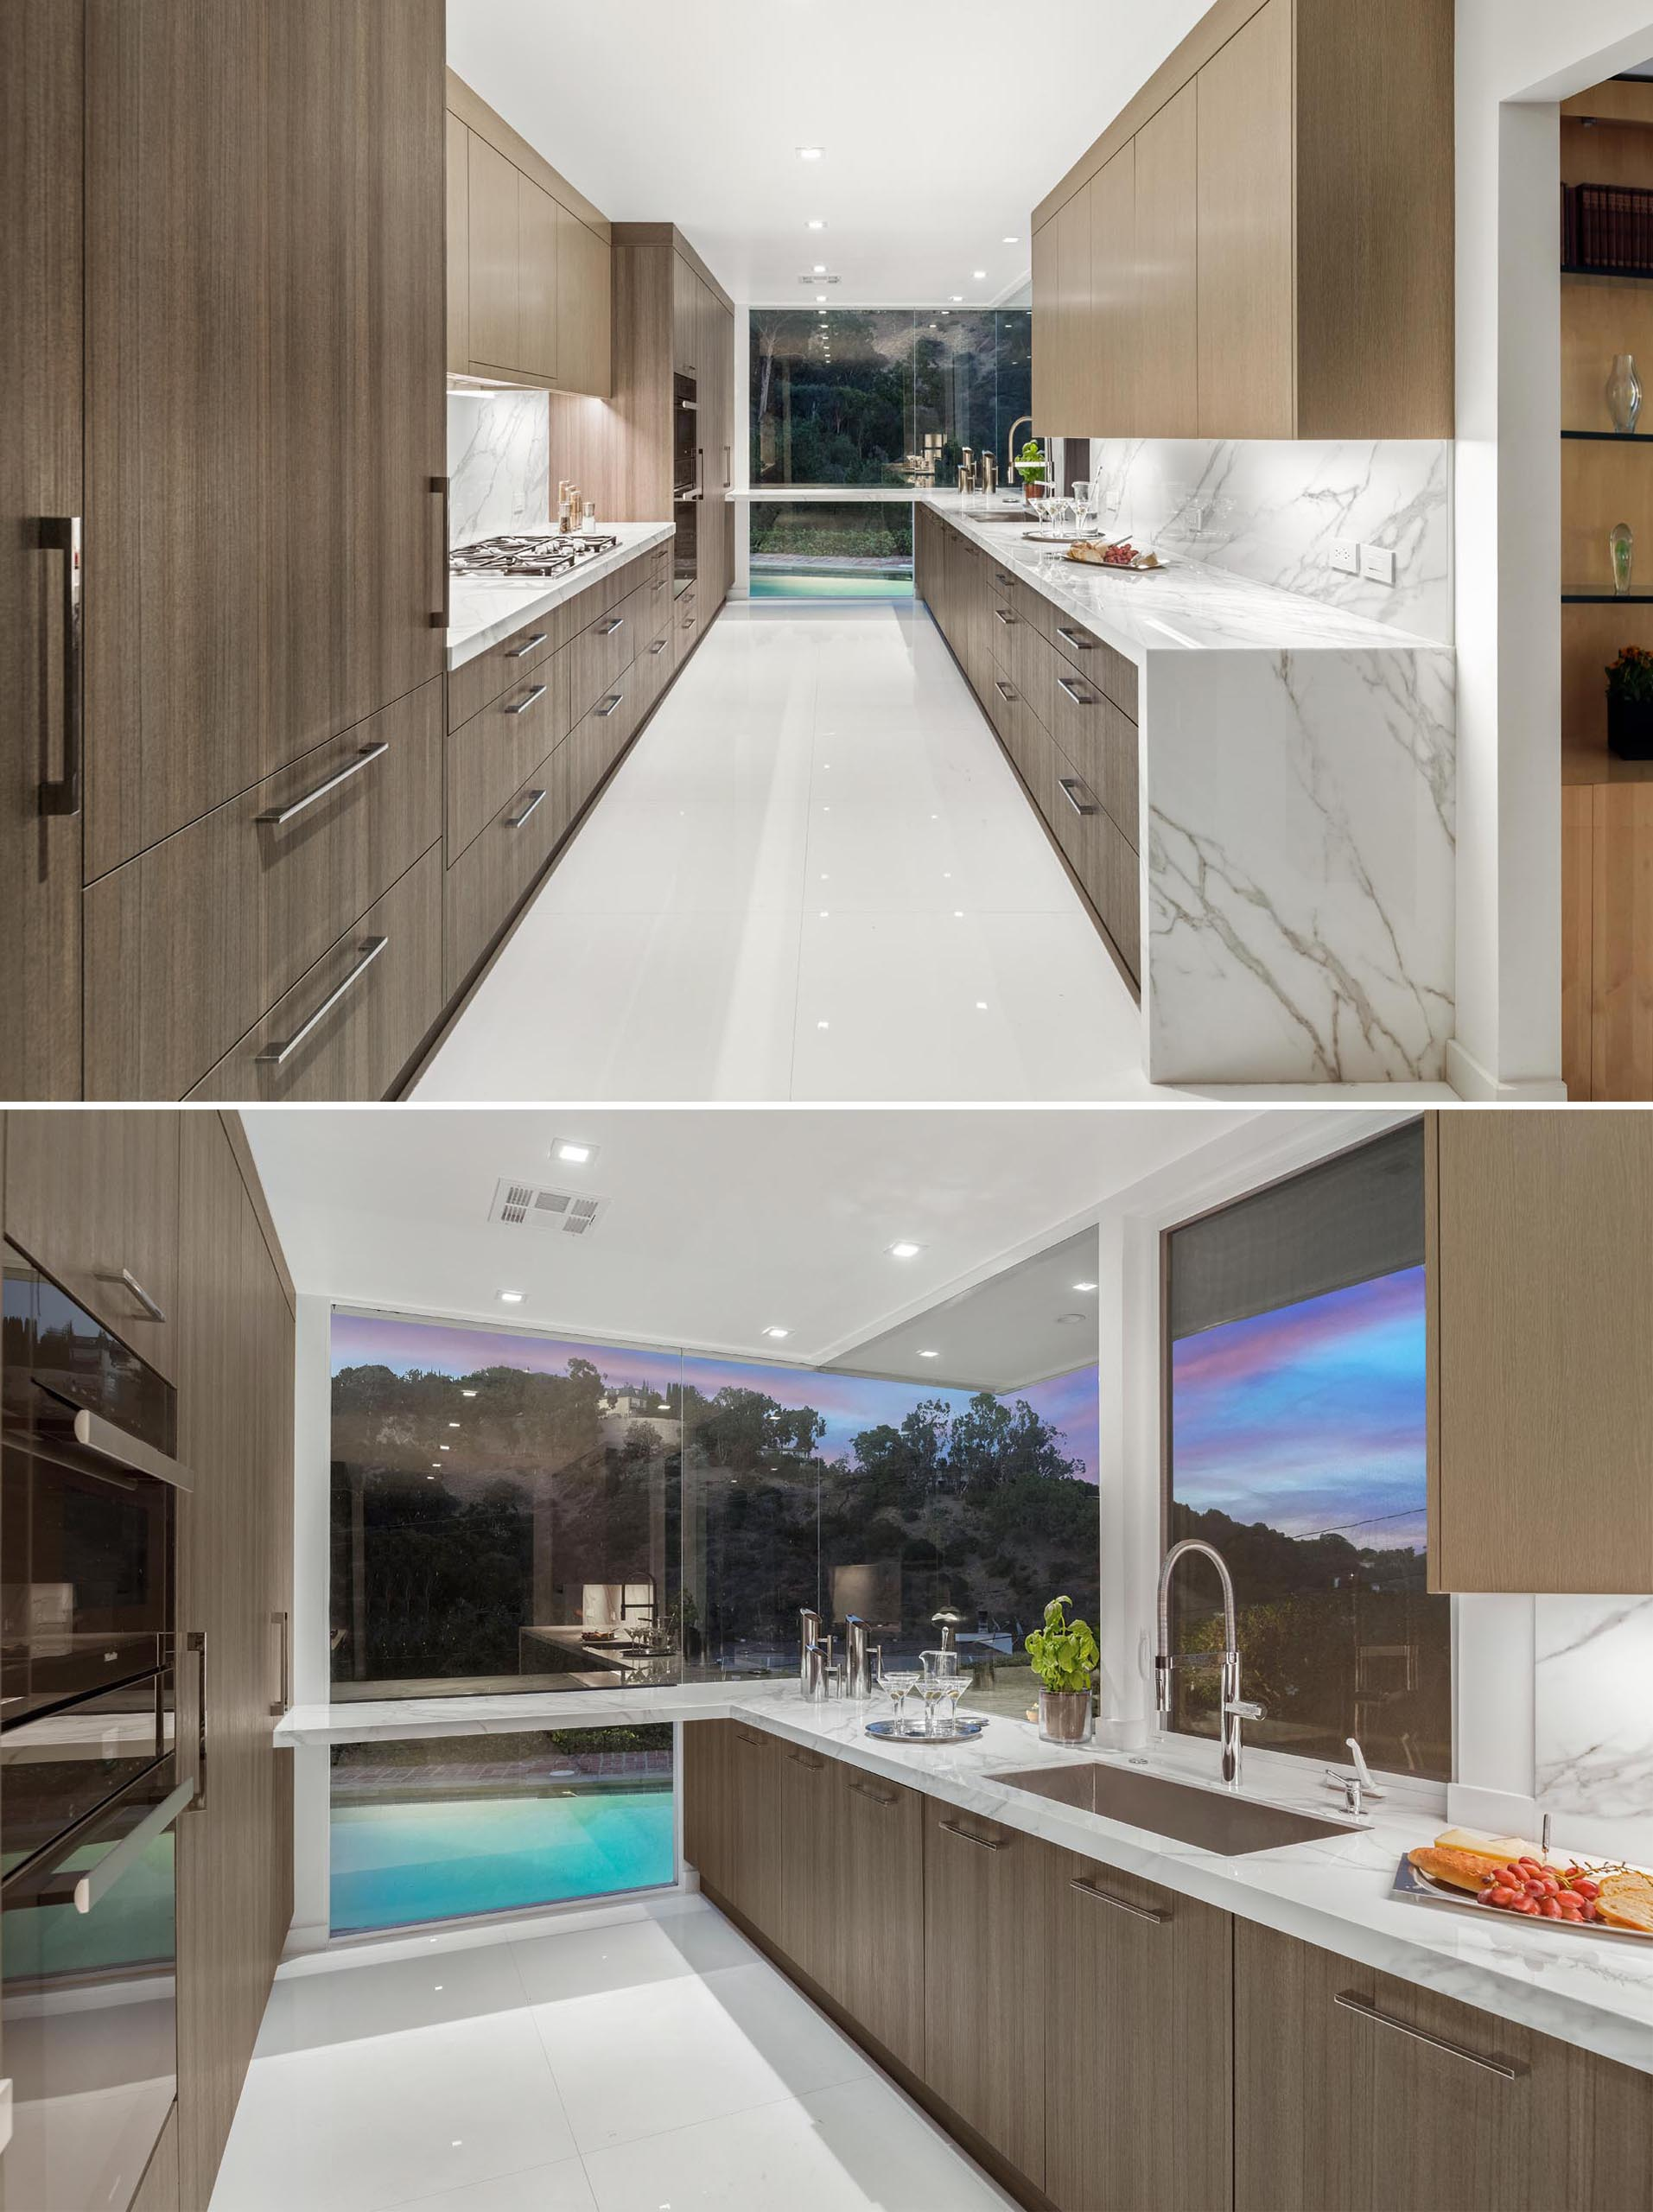 Hidden lighting under the cabinets and lights in the ceiling ensure that the kitchen is bright, even at night.